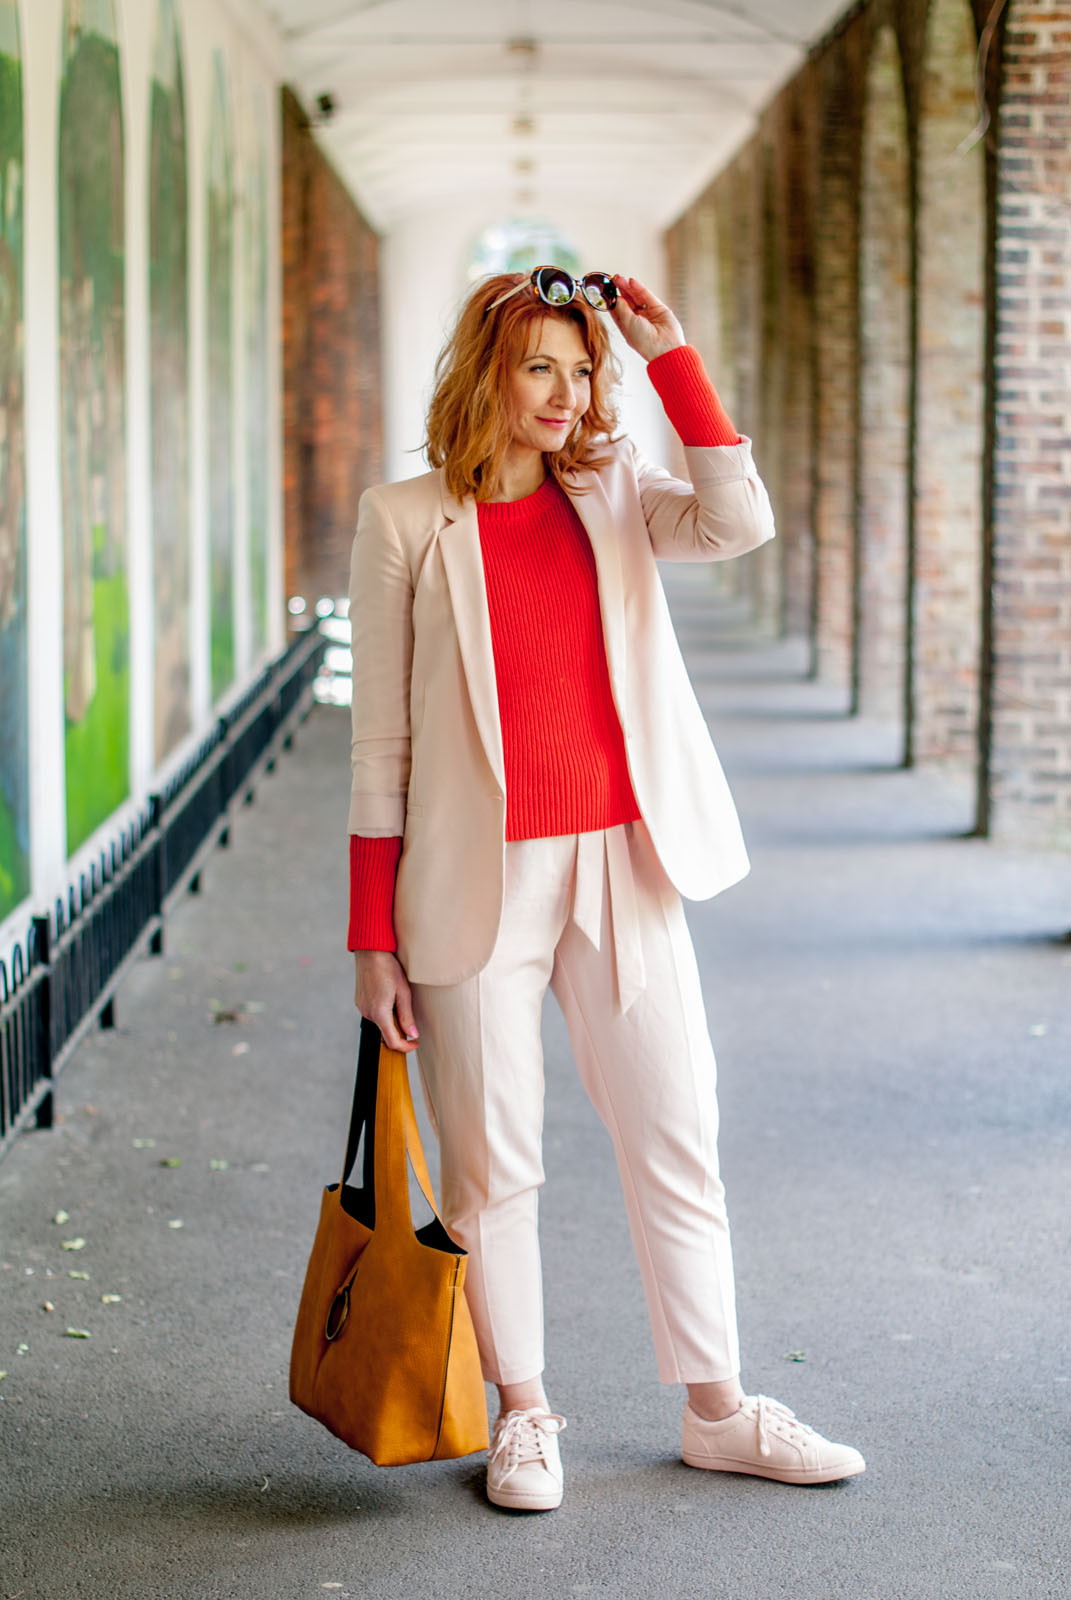 Bright spring/summer outfit: Blush pink trouser (pants) suit \ matching sneakers \ tomato orange red sweater \ yellow ochre suede hobo bag \ tortoiseshell sunglasses | Not Dressed As Lamb, over 40 styleBright spring/summer outfit: Blush pink trouser (pants) suit \ matching sneakers \ tomato orange red sweater \ yellow ochre suede hobo bag \ tortoiseshell sunglasses | Not Dressed As Lamb, over 40 style